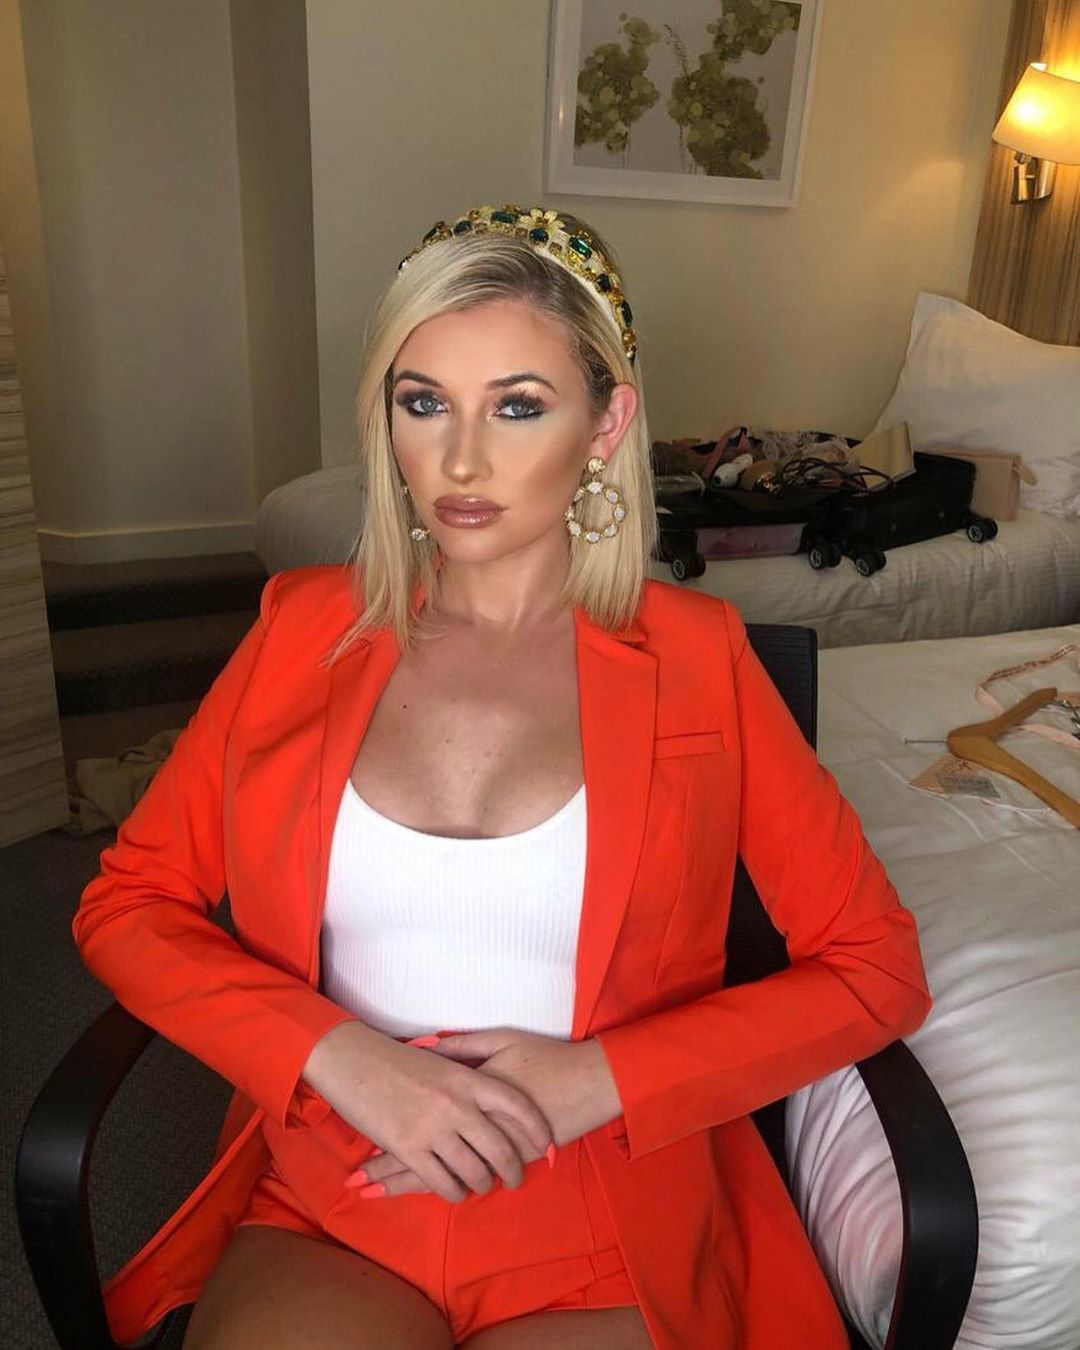 Image may contain:  Love Island 2019 contestants, Love Island, 2019, now, job, Instagram, updates, news, latest, series five, Amy Hart, Chair, Couch, Jacket, Blazer, Female, Girl, Blonde, Child, Kid, Woman, Teen, Suit, Overcoat, Coat, Person, Human, Furniture, Apparel, Clothing